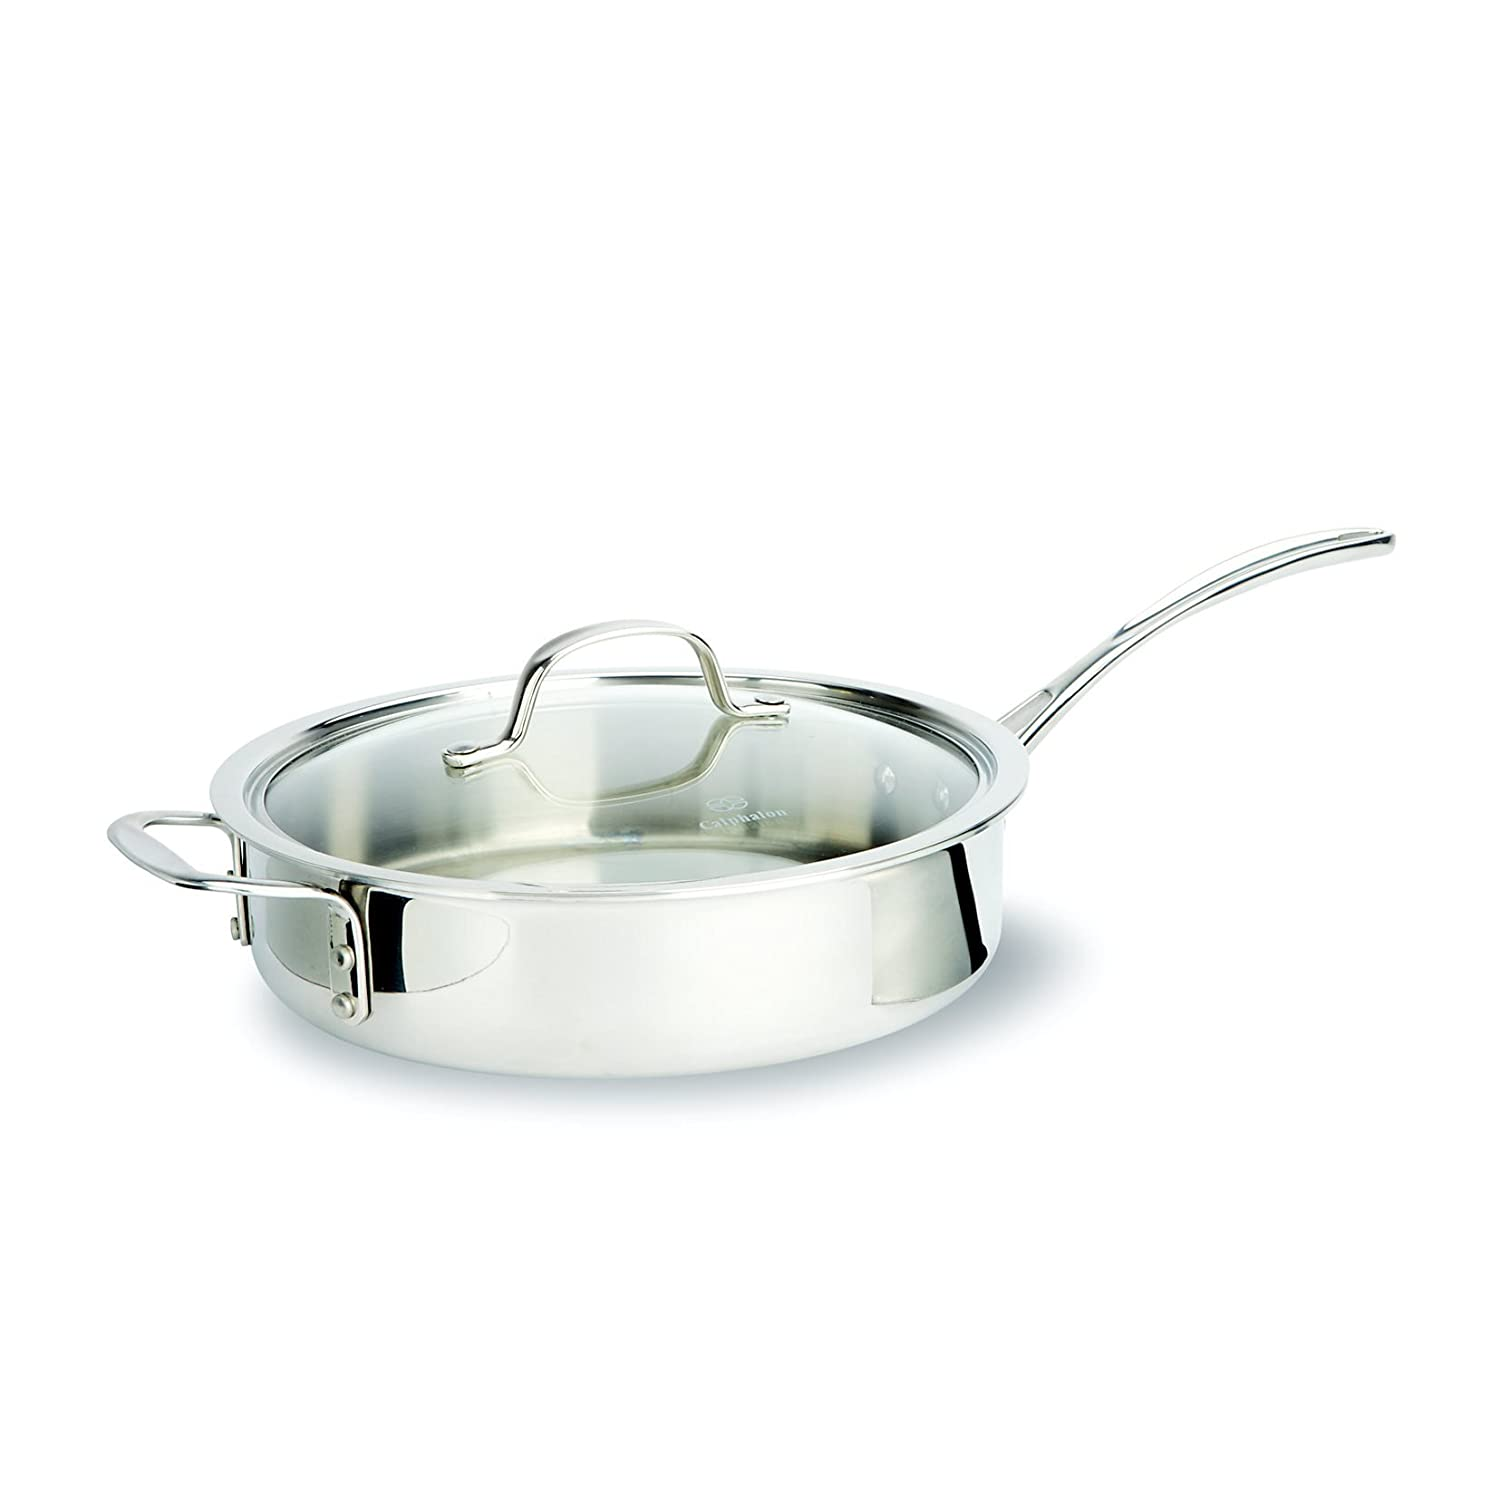 calphalon triply stainless steel 13piece set includes 8inch 10inch and 12inch omelette pans 112 and 212quart covered sauce pans 3quart covered - Calphalon Tri Ply Stainless Steel